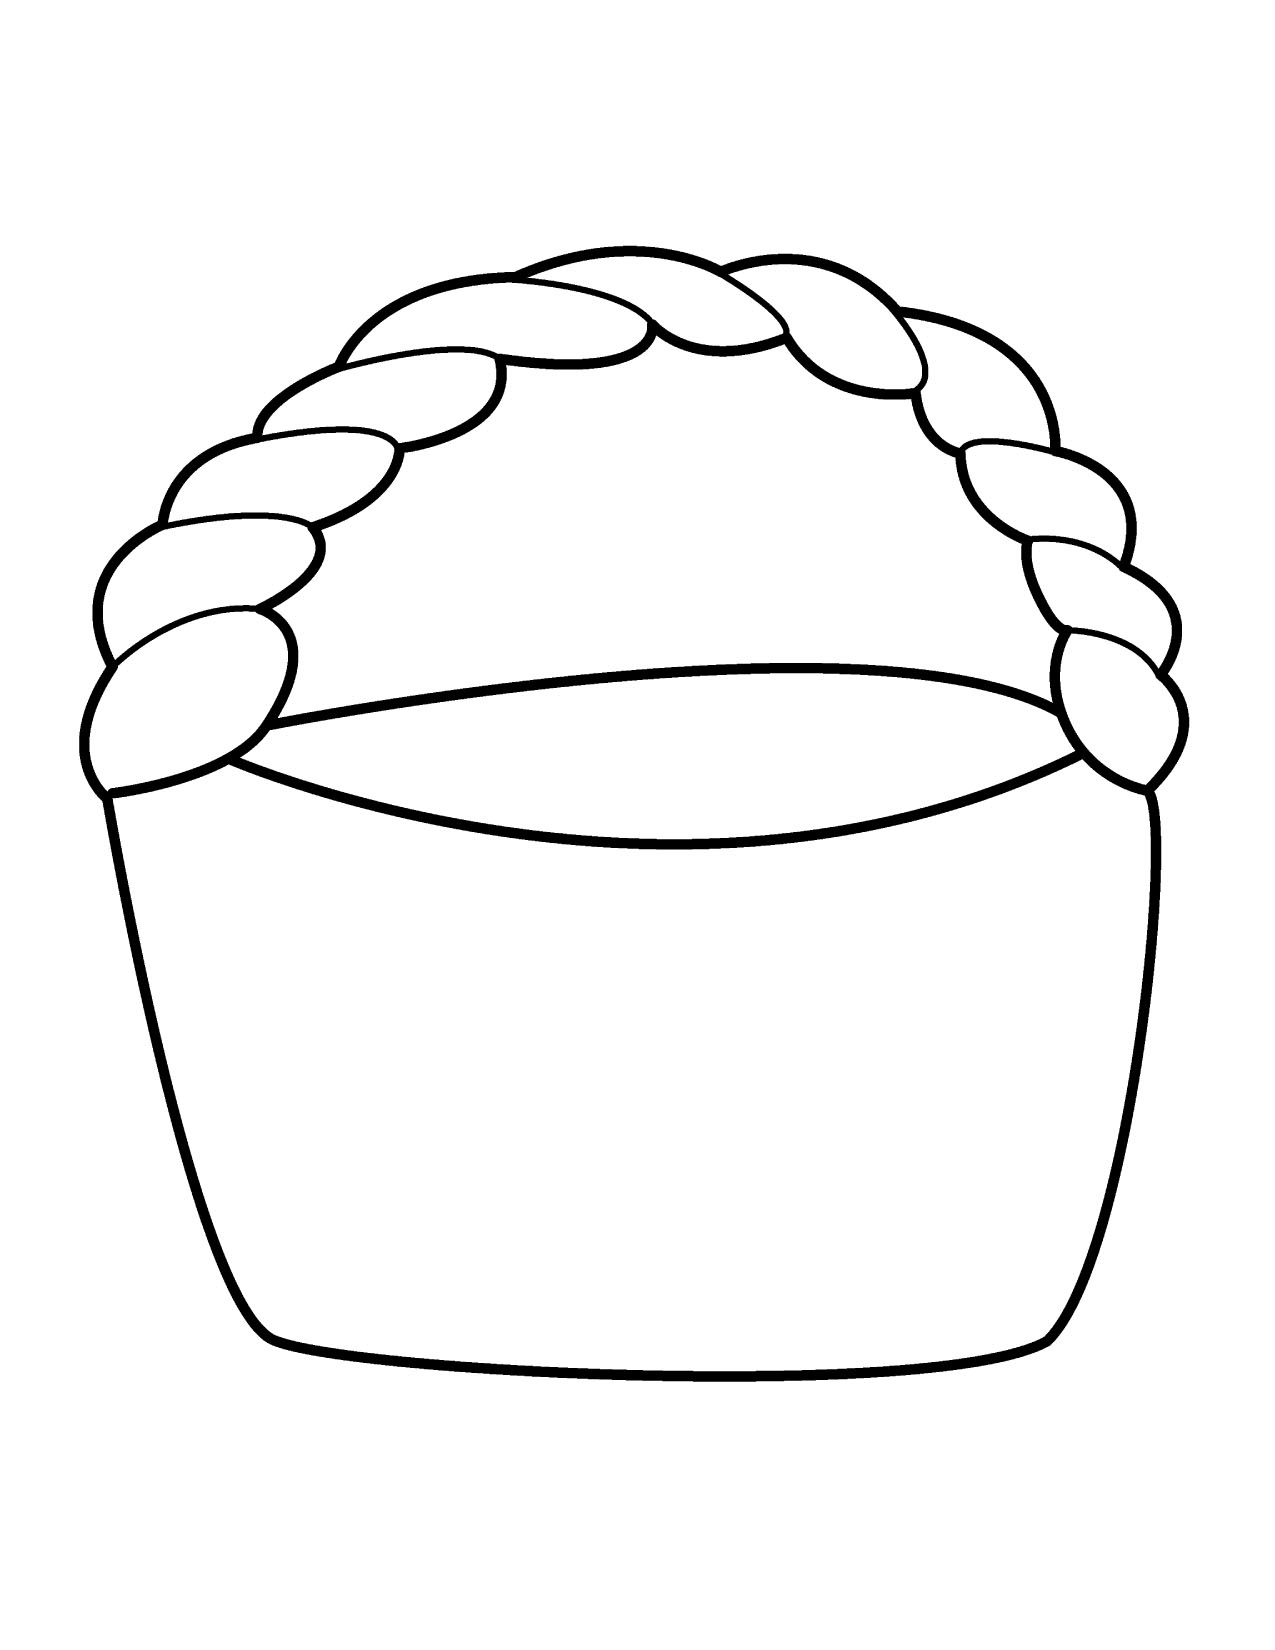 Easter Basket Template Free Printable - ClipArt Best